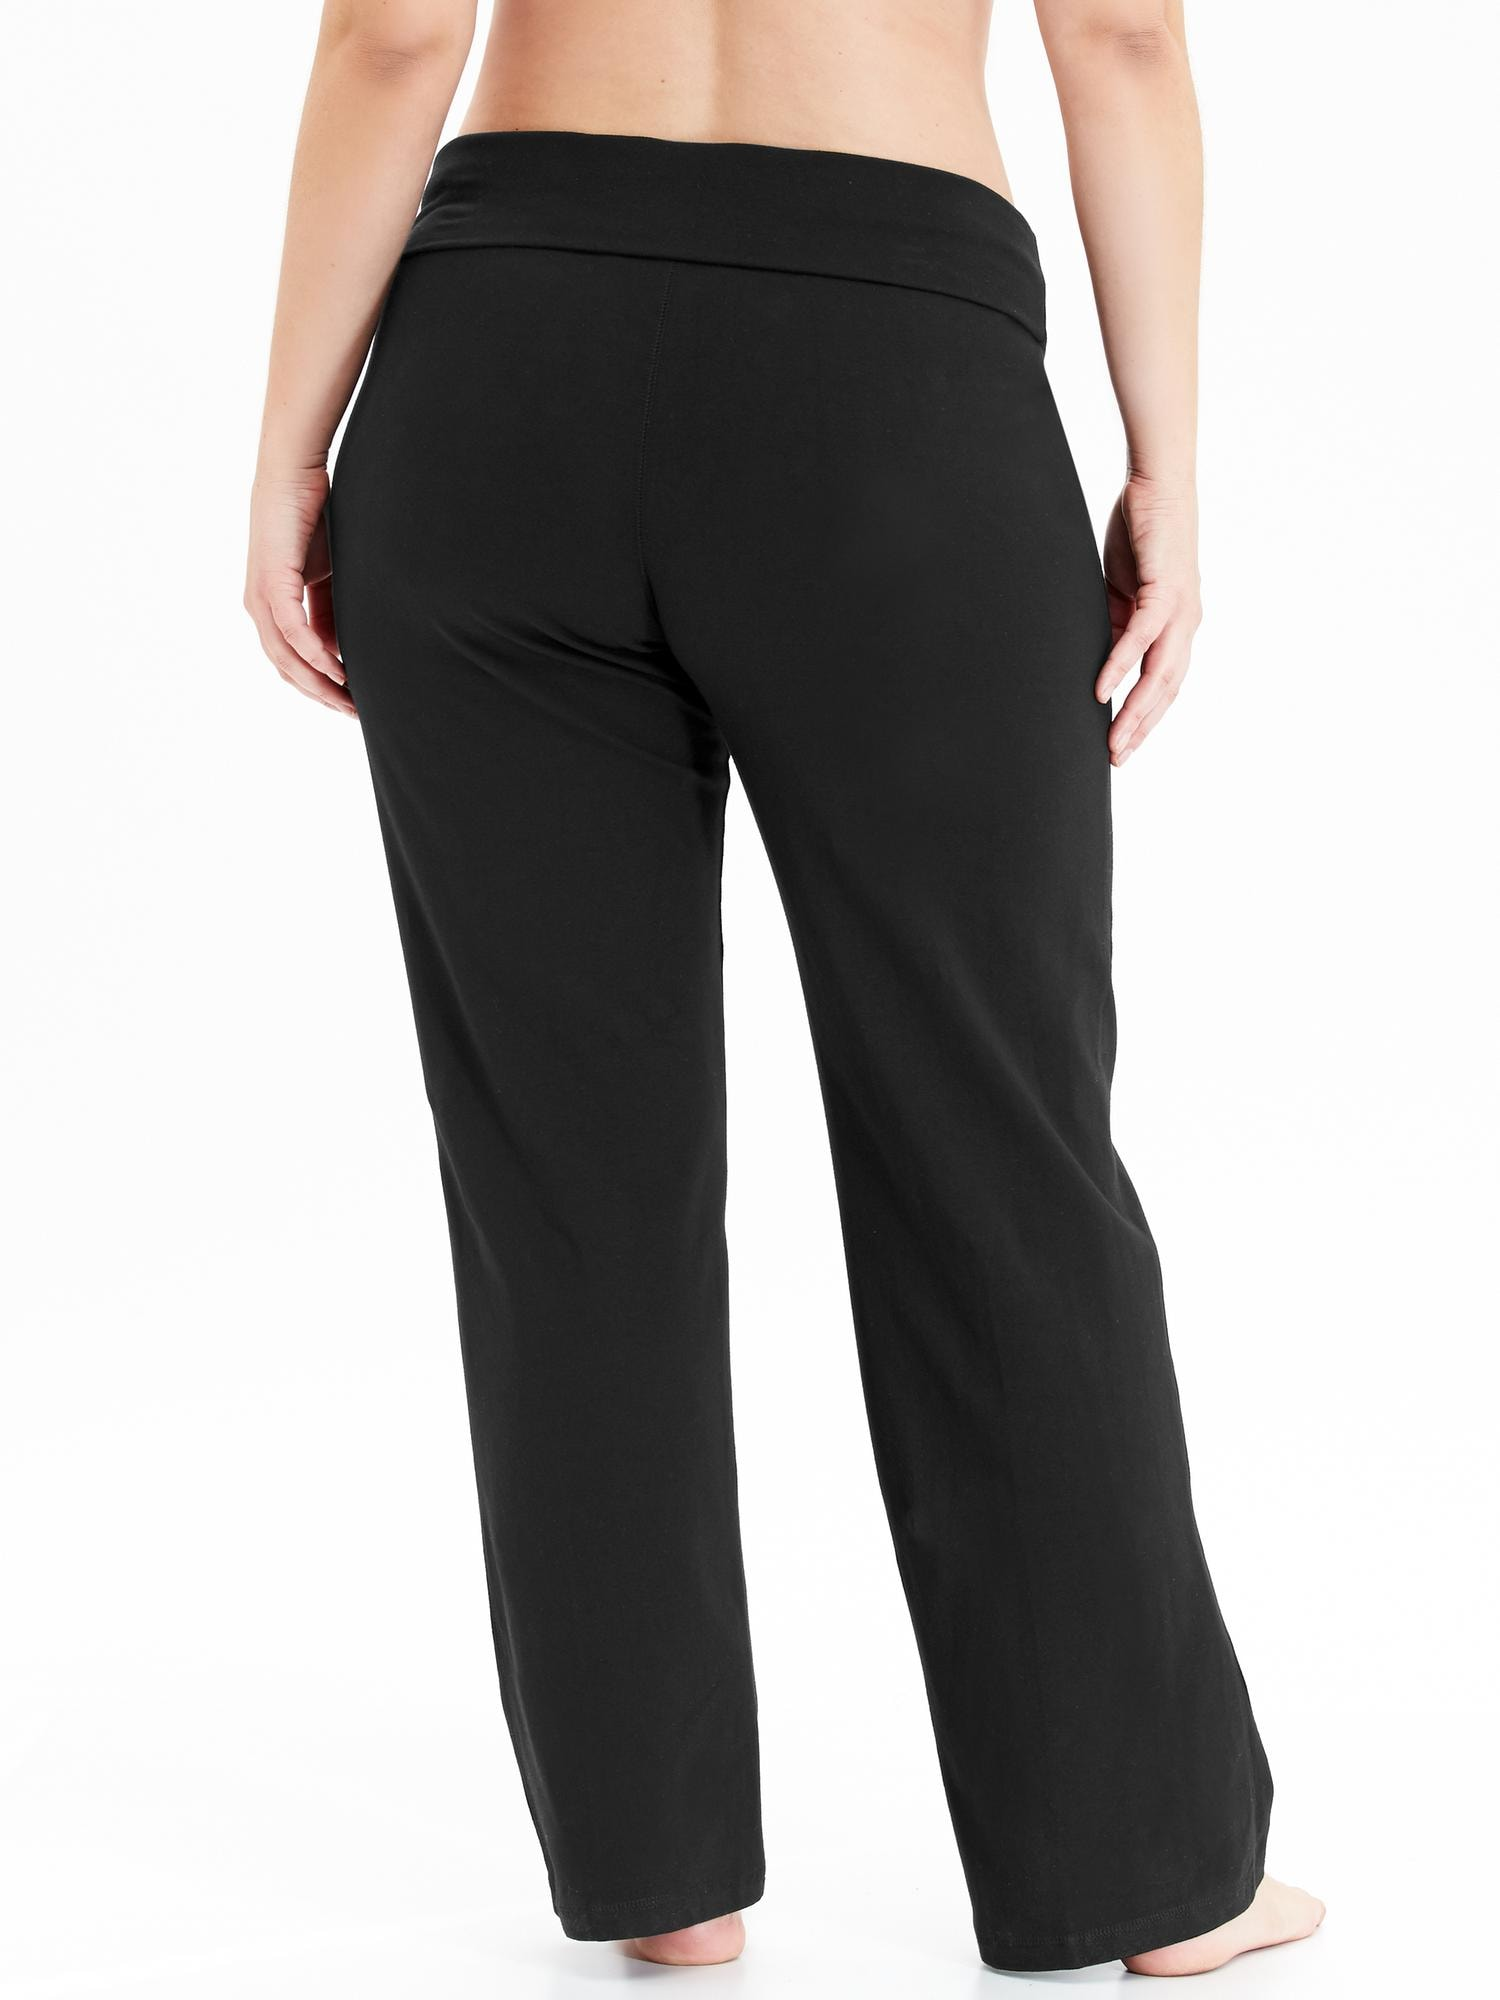 Go-Dry Plus-Size Yoga Pants | Old Navy